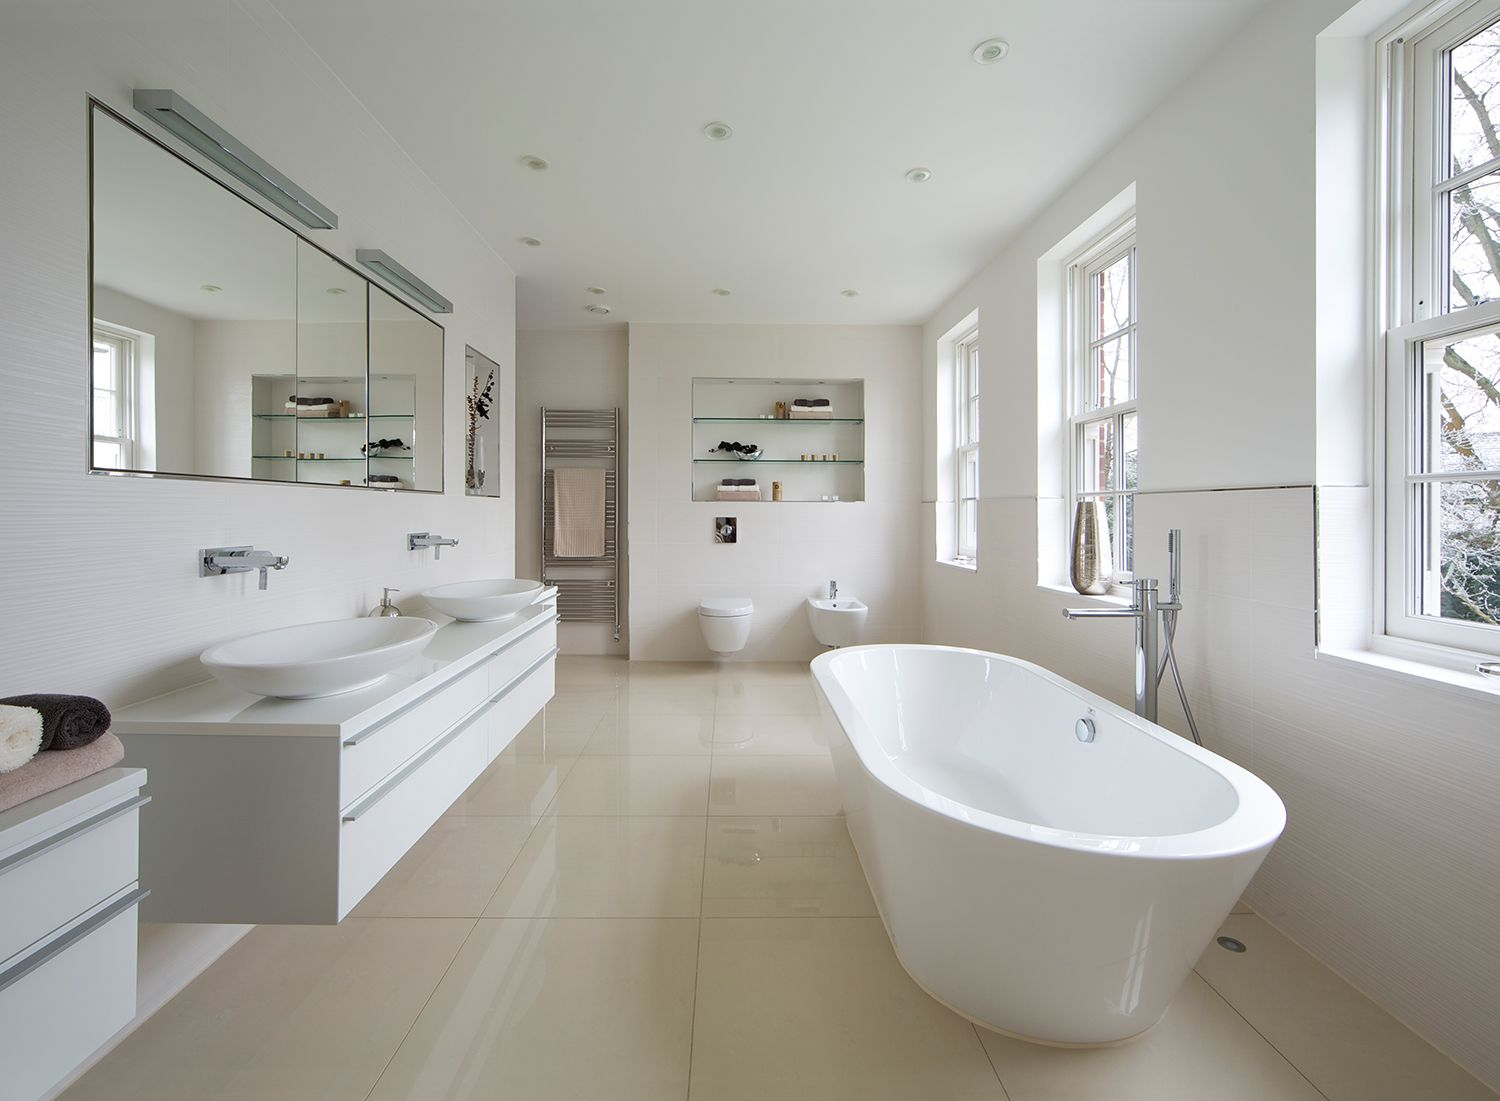 10 ideas for beautiful bathrooms with pedestal sinks